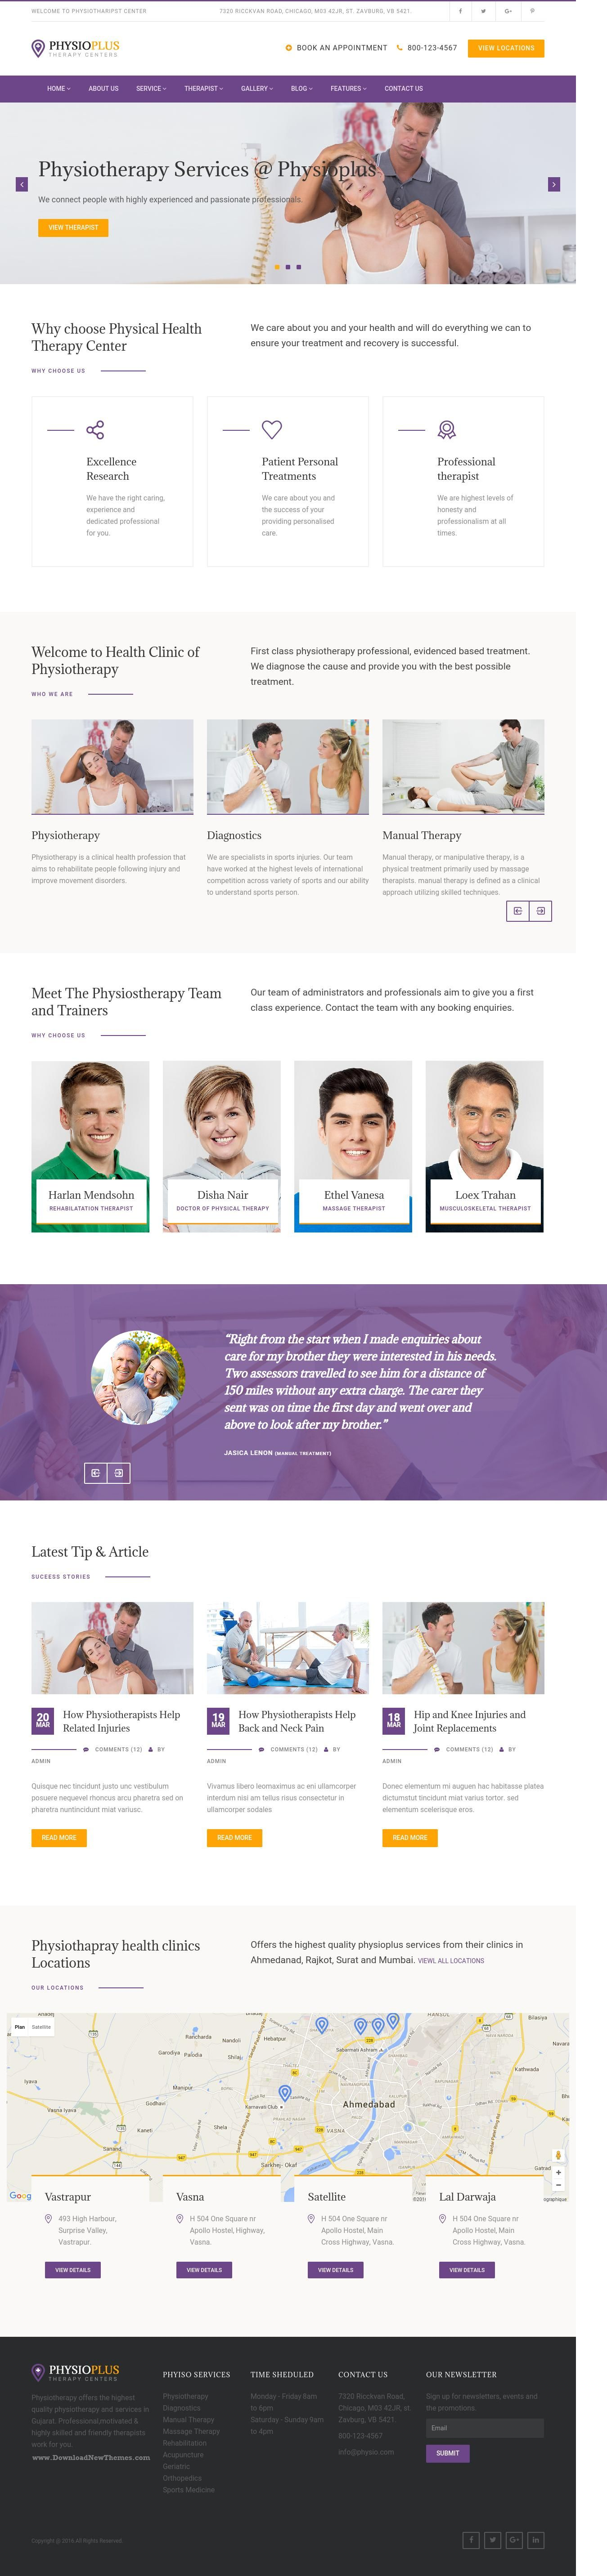 Need a website template for medical or